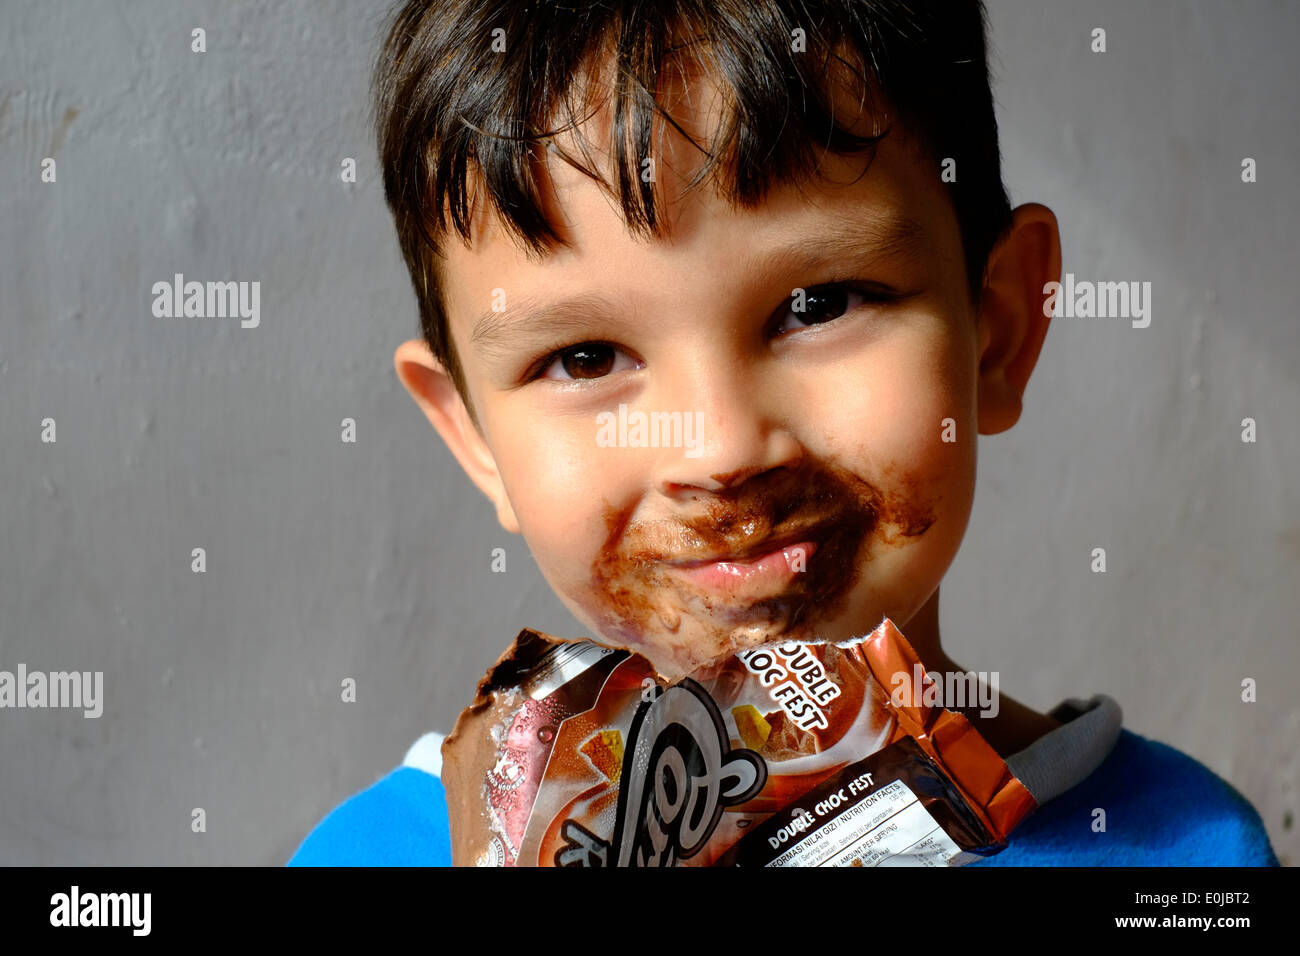 young boy eating a chocolate ice cream and getting most of it ...